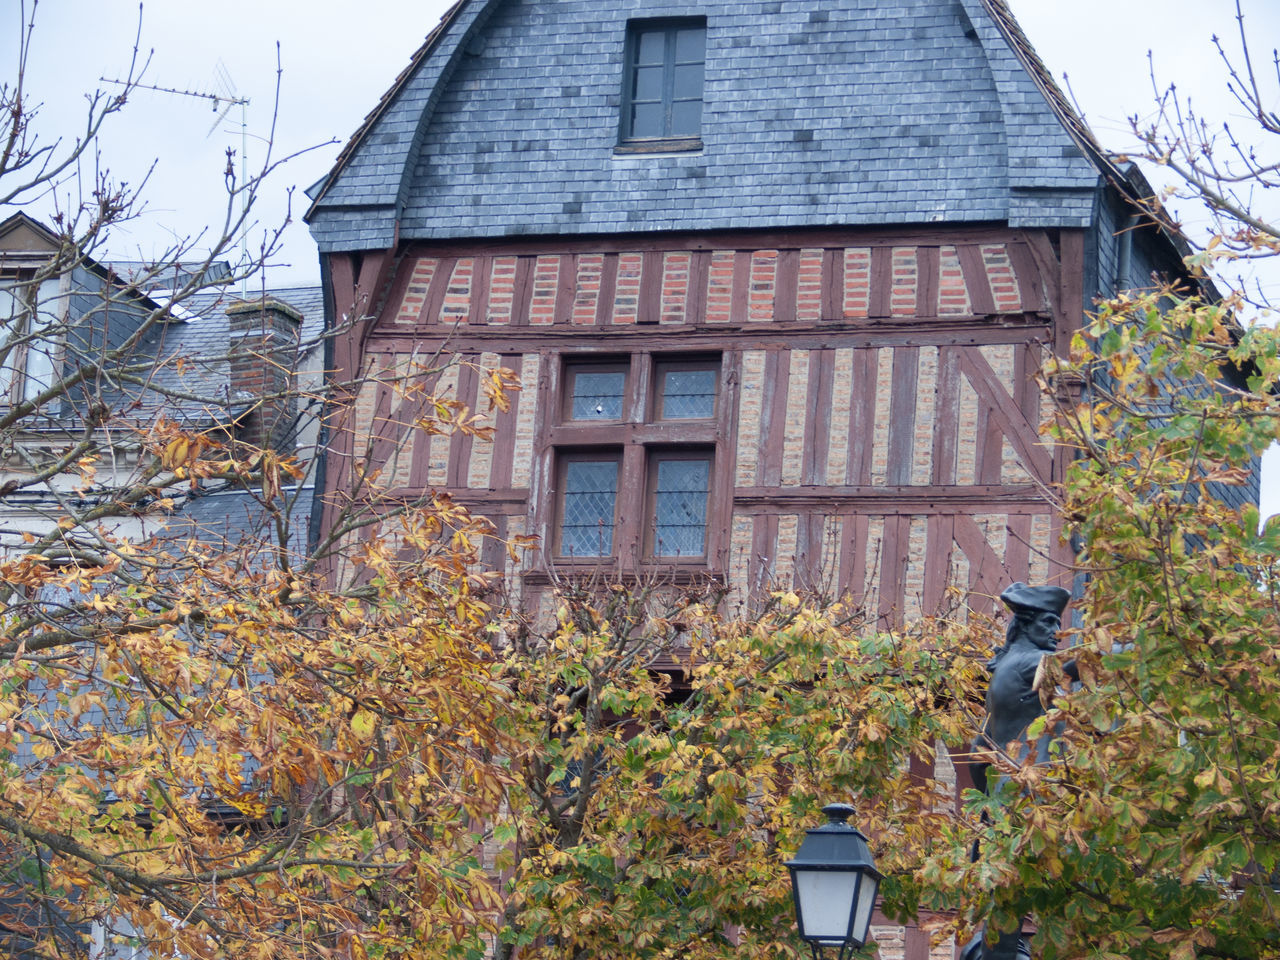 building exterior, architecture, built structure, tree, day, autumn, house, no people, outdoors, leaf, branch, bare tree, nature, sky